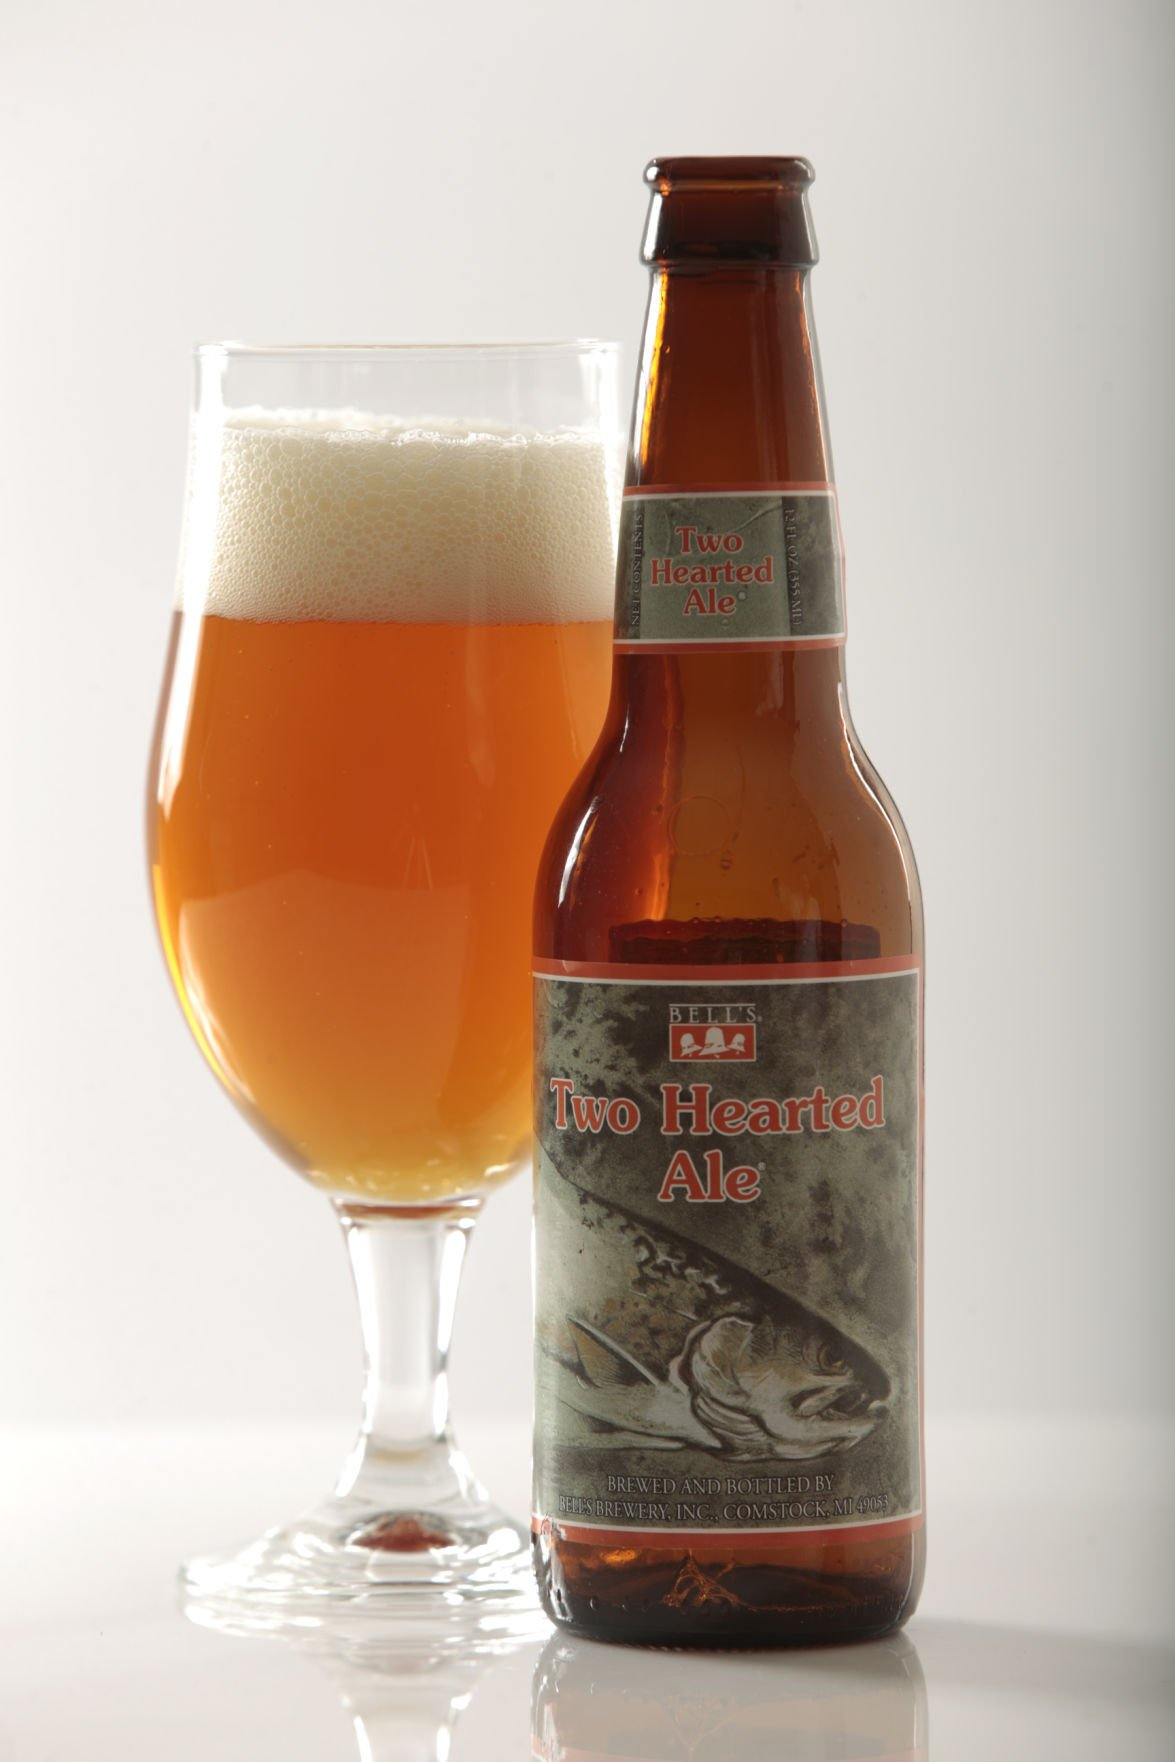 No. 2: Bell's Two Hearted Ale